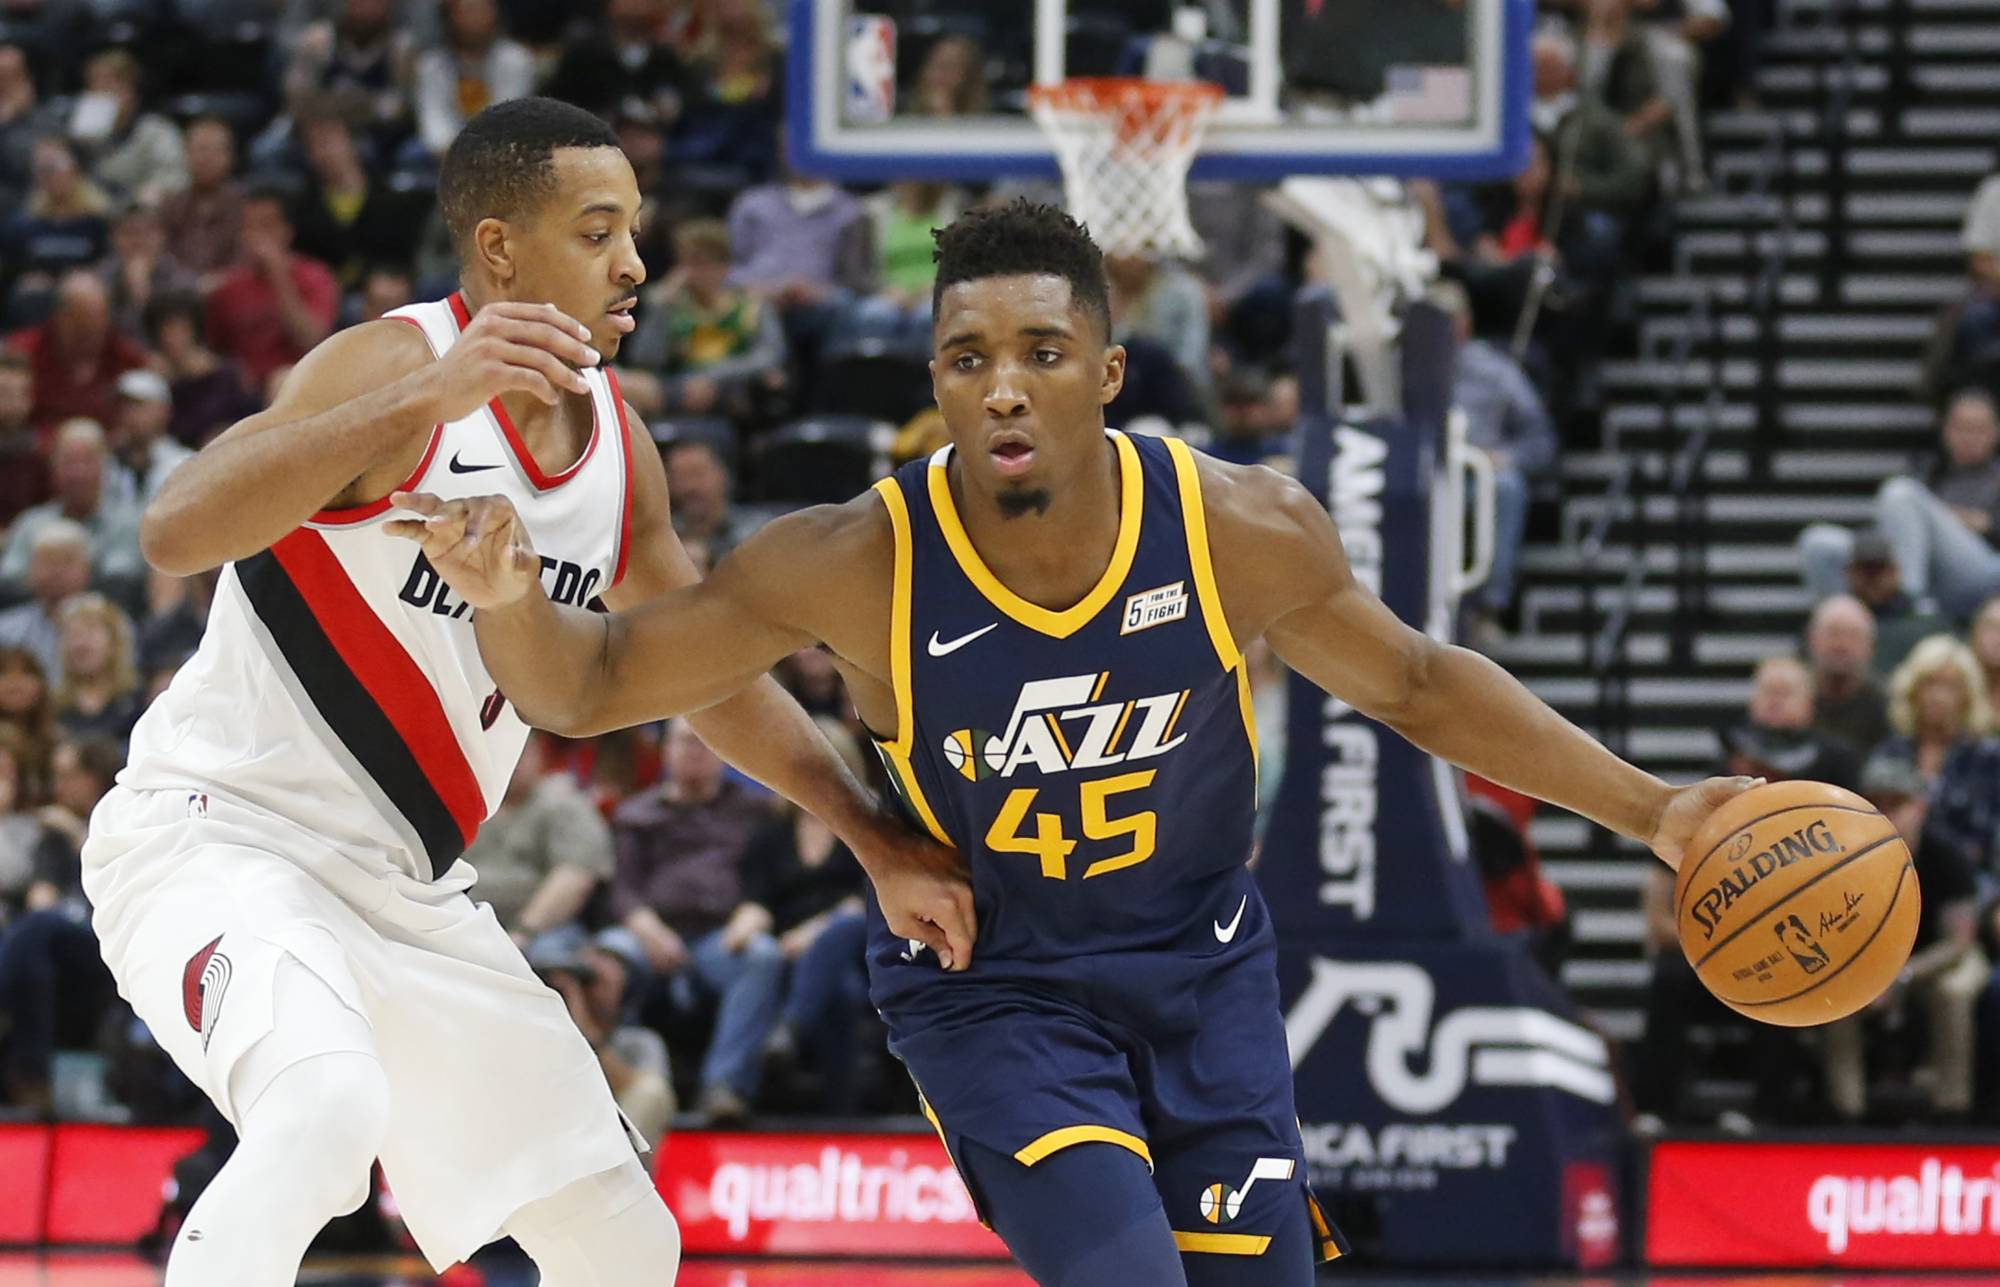 b681a68c42d474 The Utah Jazz coach talked about his faith in rookie Donovan Mitchell